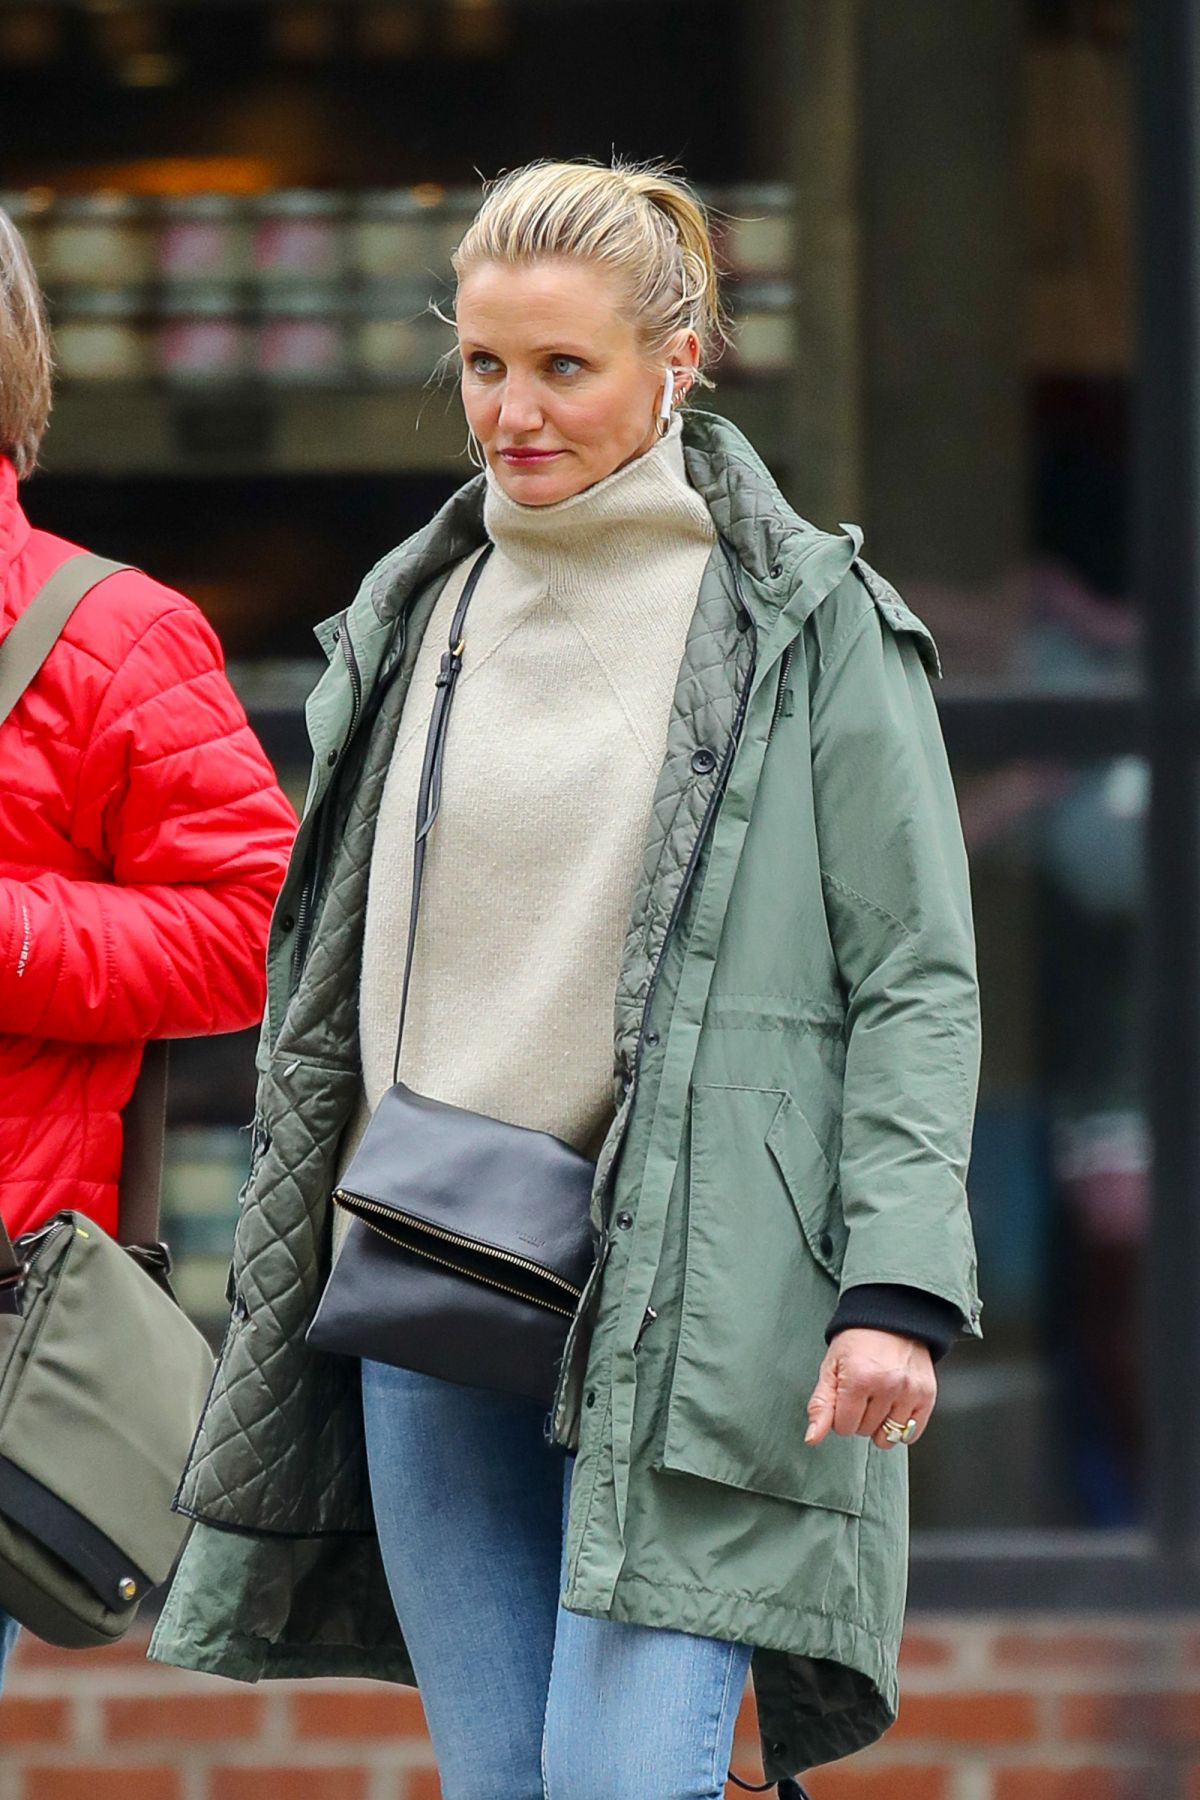 CAMERON DIAZ Out and About in New York 02/15/2019 – HawtCelebsCameron Diaz Pregnant 2020